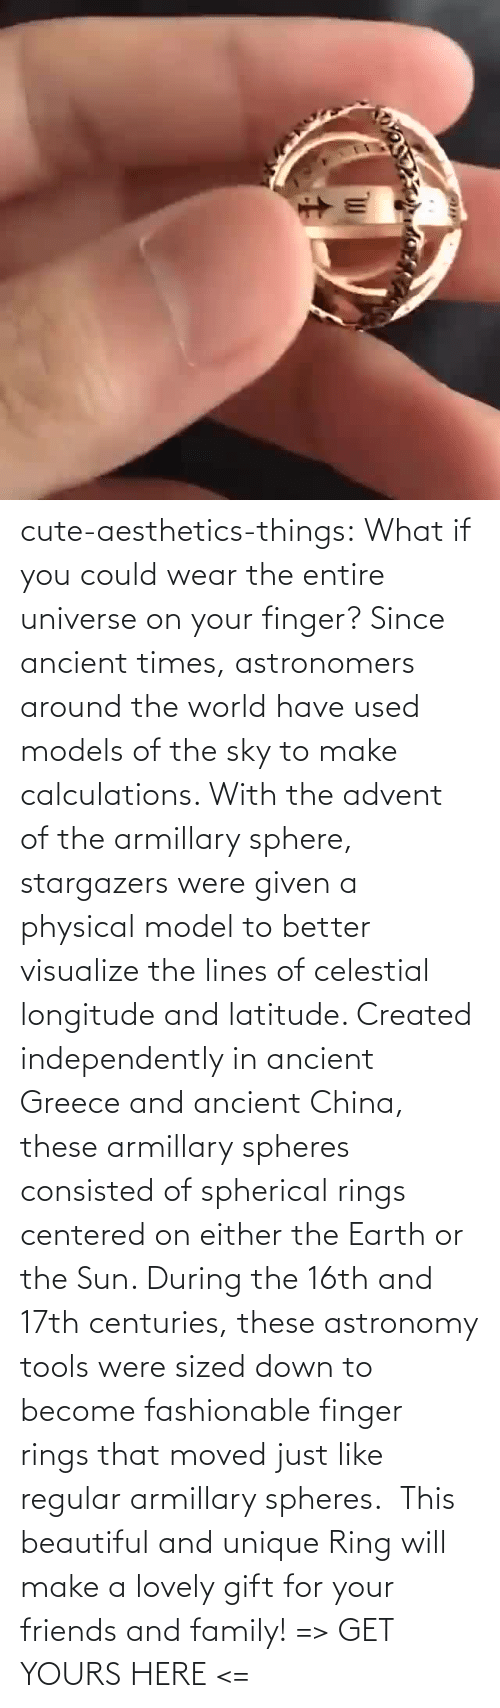 Either: cute-aesthetics-things: What if you could wear the entire universe on your finger? Since ancient times, astronomers around the world have used models of the sky to make calculations. With the advent of the armillary sphere, stargazers were given a physical model to better visualize the lines of celestial longitude and latitude. Created independently in ancient Greece and ancient China, these armillary spheres consisted of spherical rings centered on either the Earth or the Sun. During the 16th and 17th centuries, these astronomy tools were sized down to become fashionable finger rings that moved just like regular armillary spheres.  This beautiful and unique Ring will make a lovely gift for your friends and family! => GET YOURS HERE <=